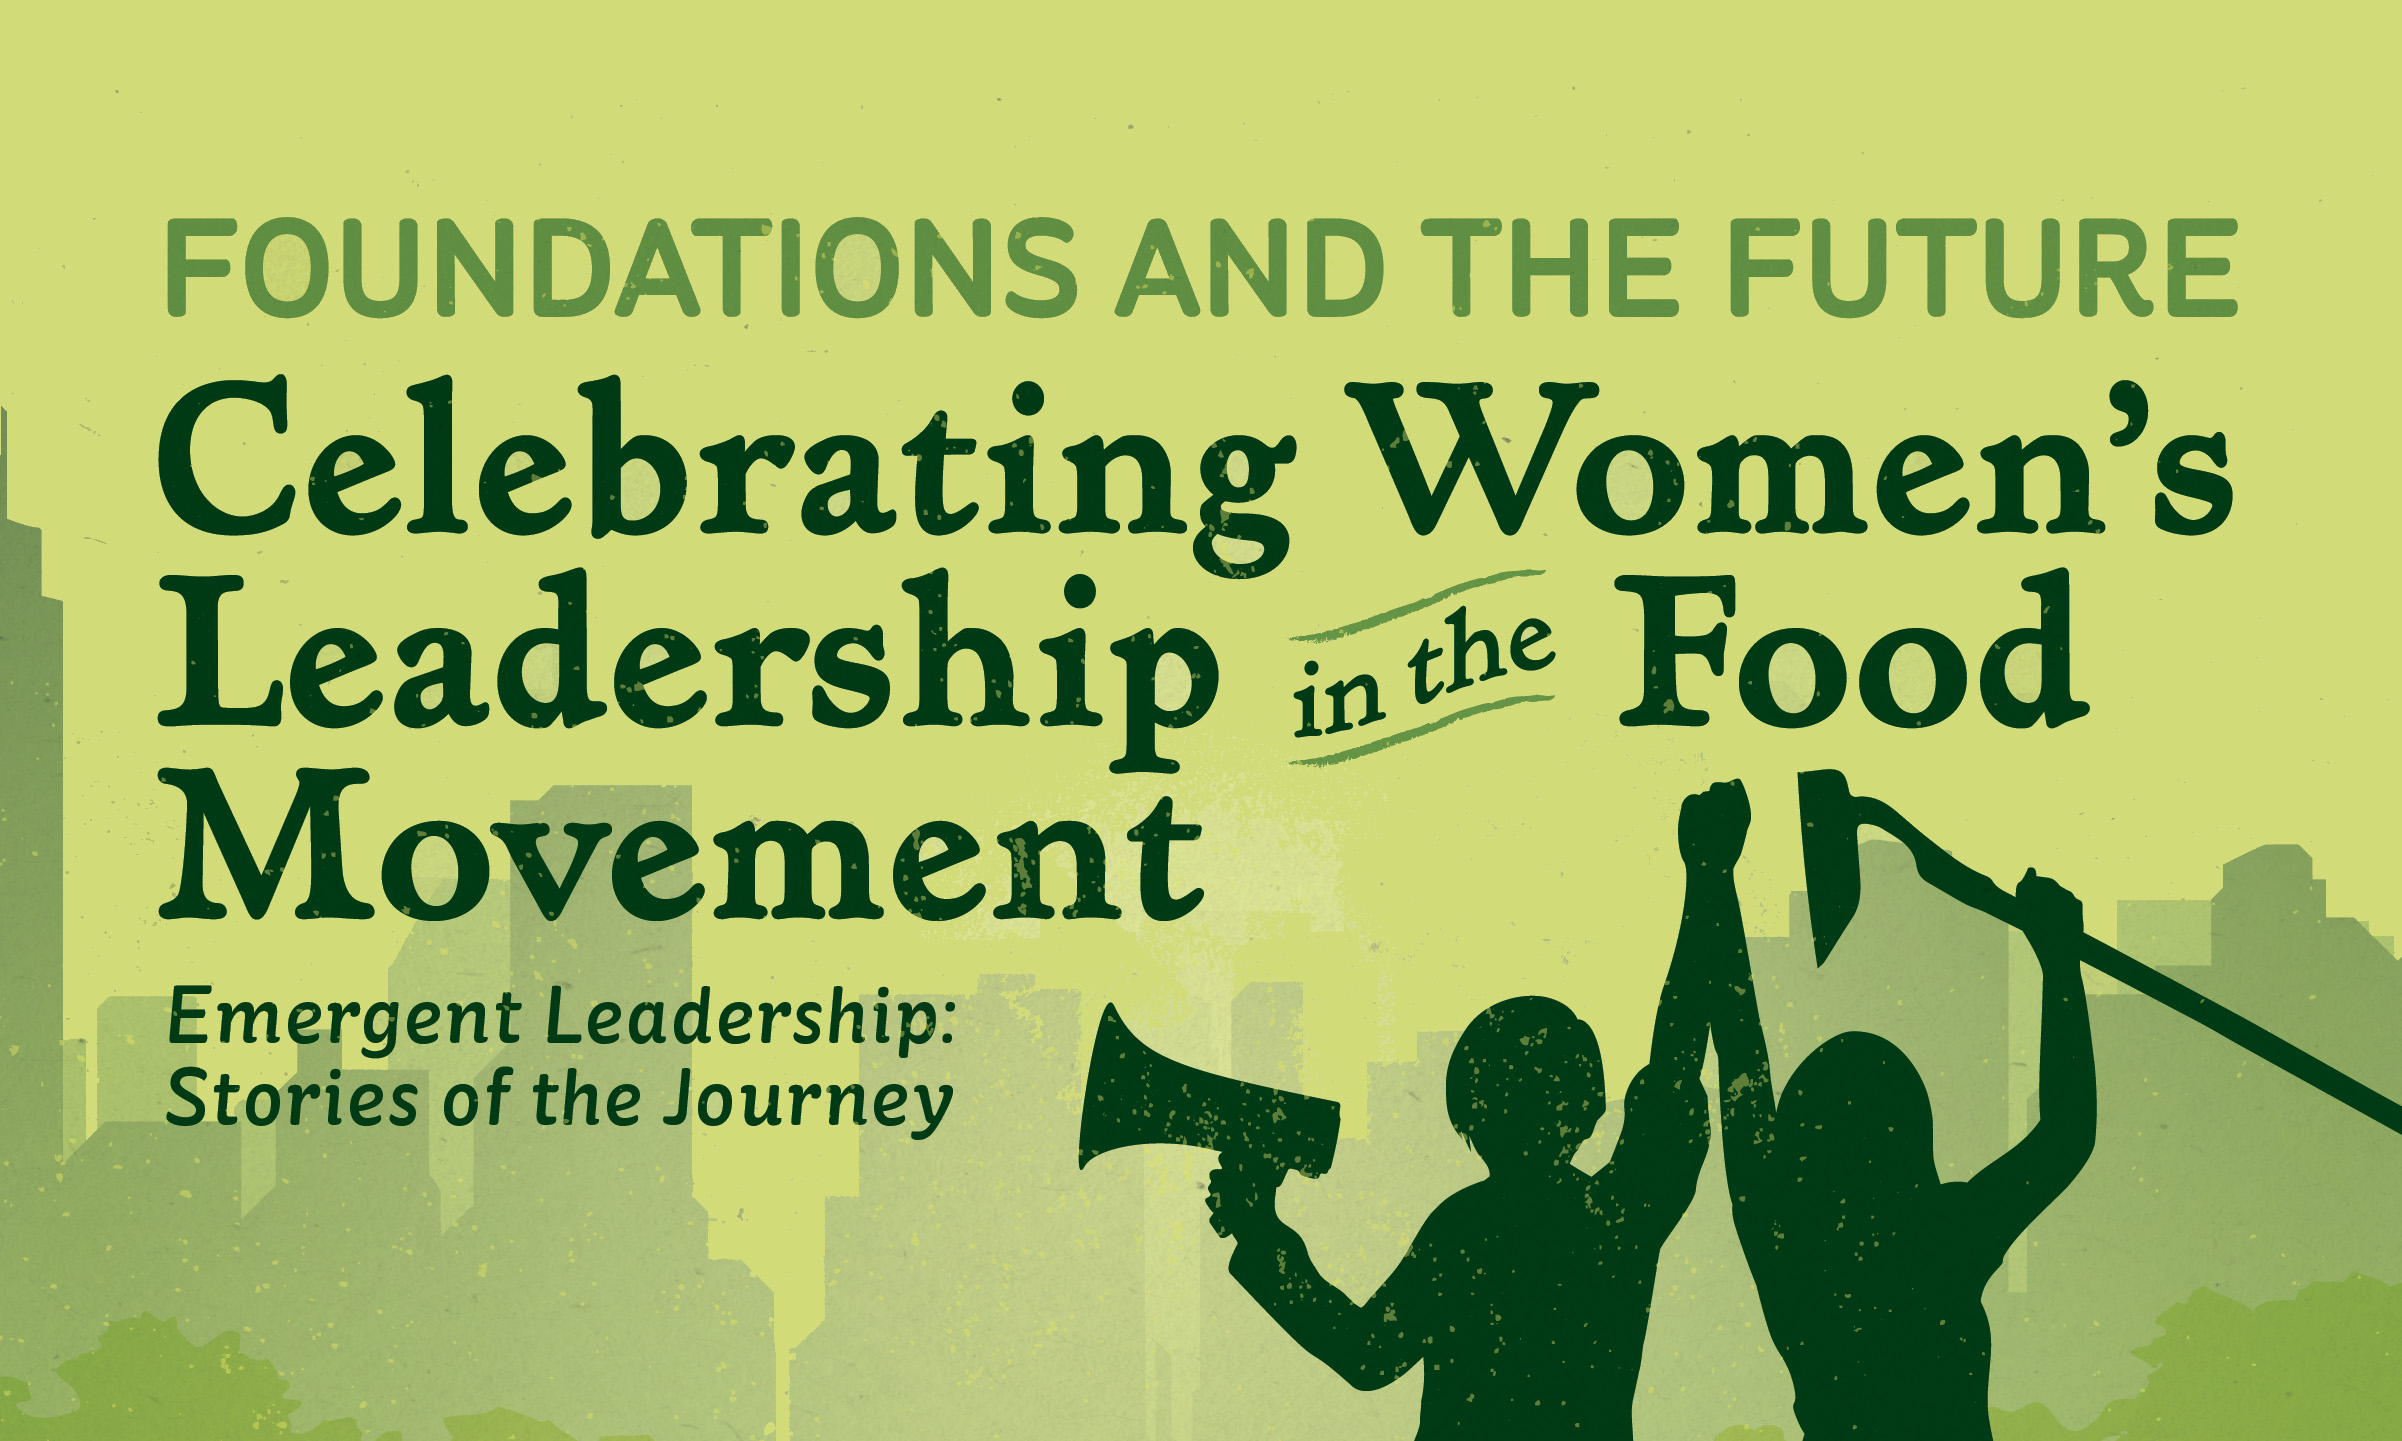 3rd Annual Symposium on Women's Leadership In The Food Movement